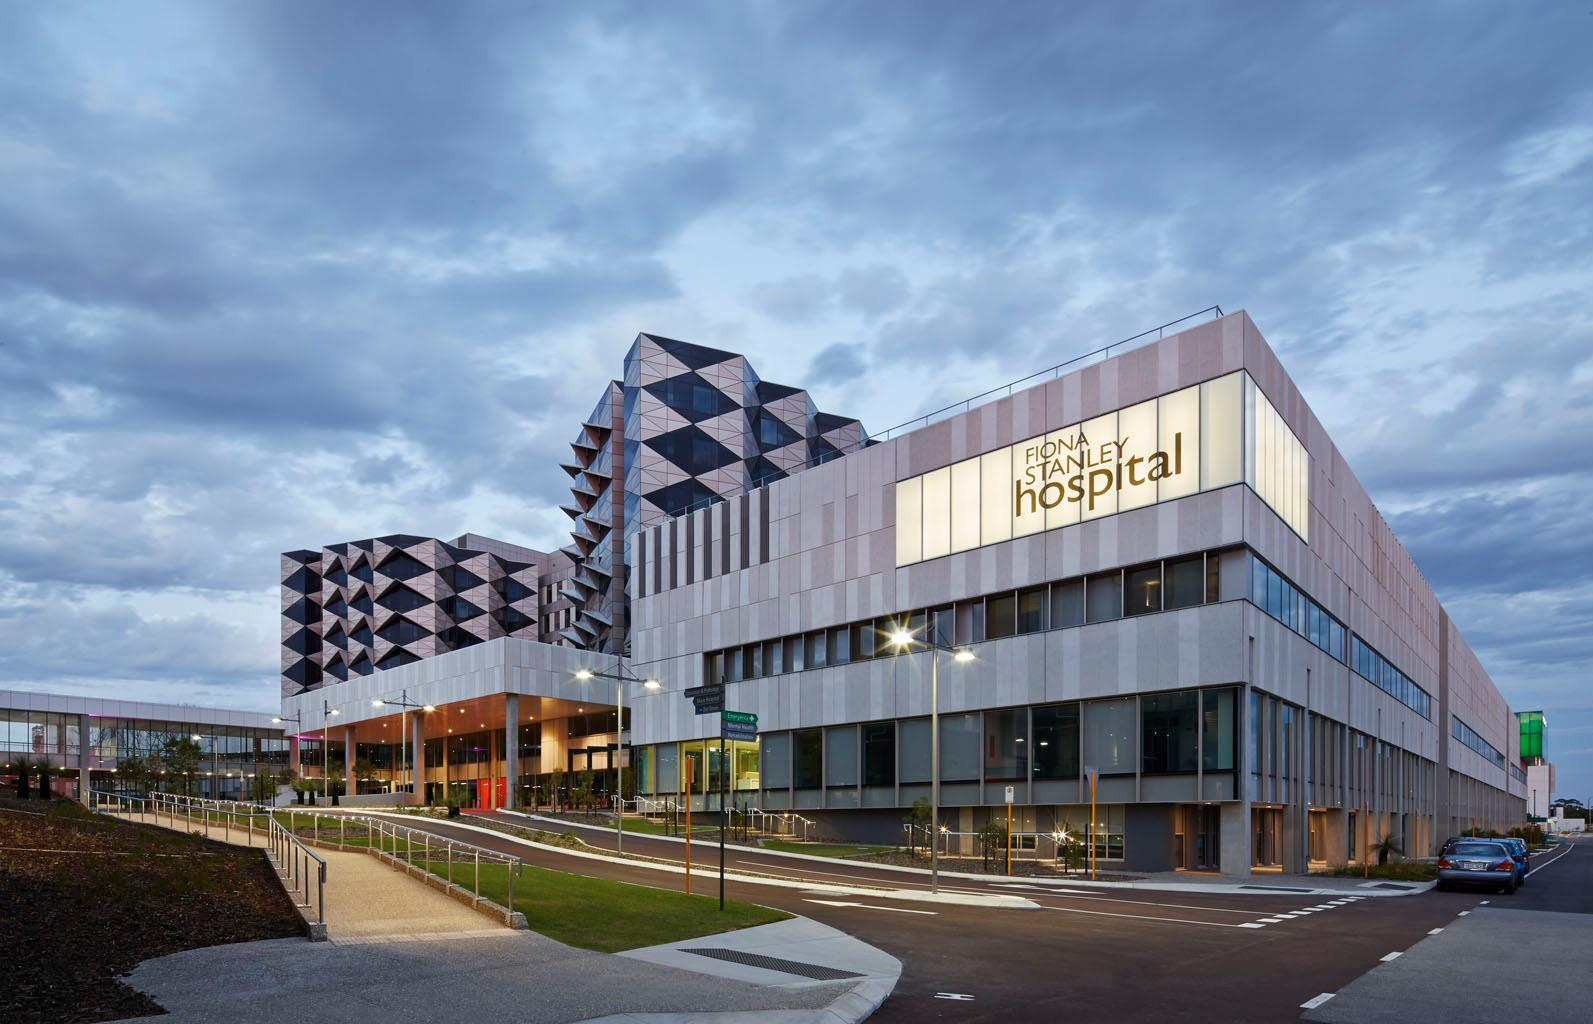 Fiona Stanley Hospital, participating in the pilot study